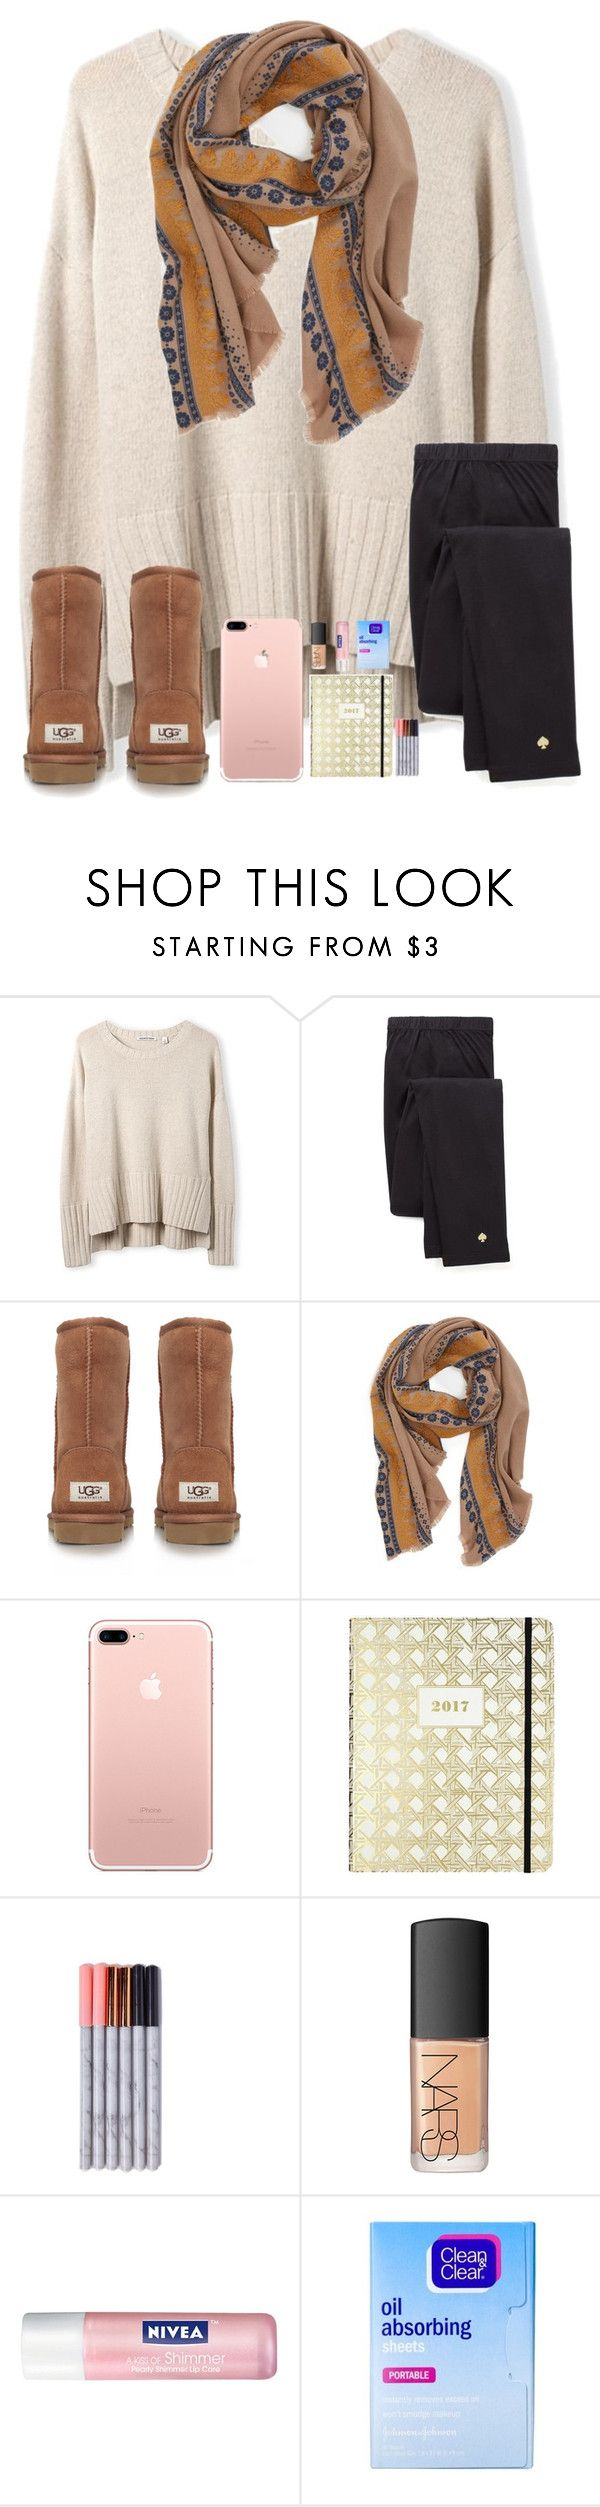 """Leggings, and Oversized Sweaters "" by kari-luvs-u-2 ❤ liked on Polyvore featuring Kate Spade, UGG Australia, Hinge, NARS Cosmetics, Nivea and Clean & Clear"